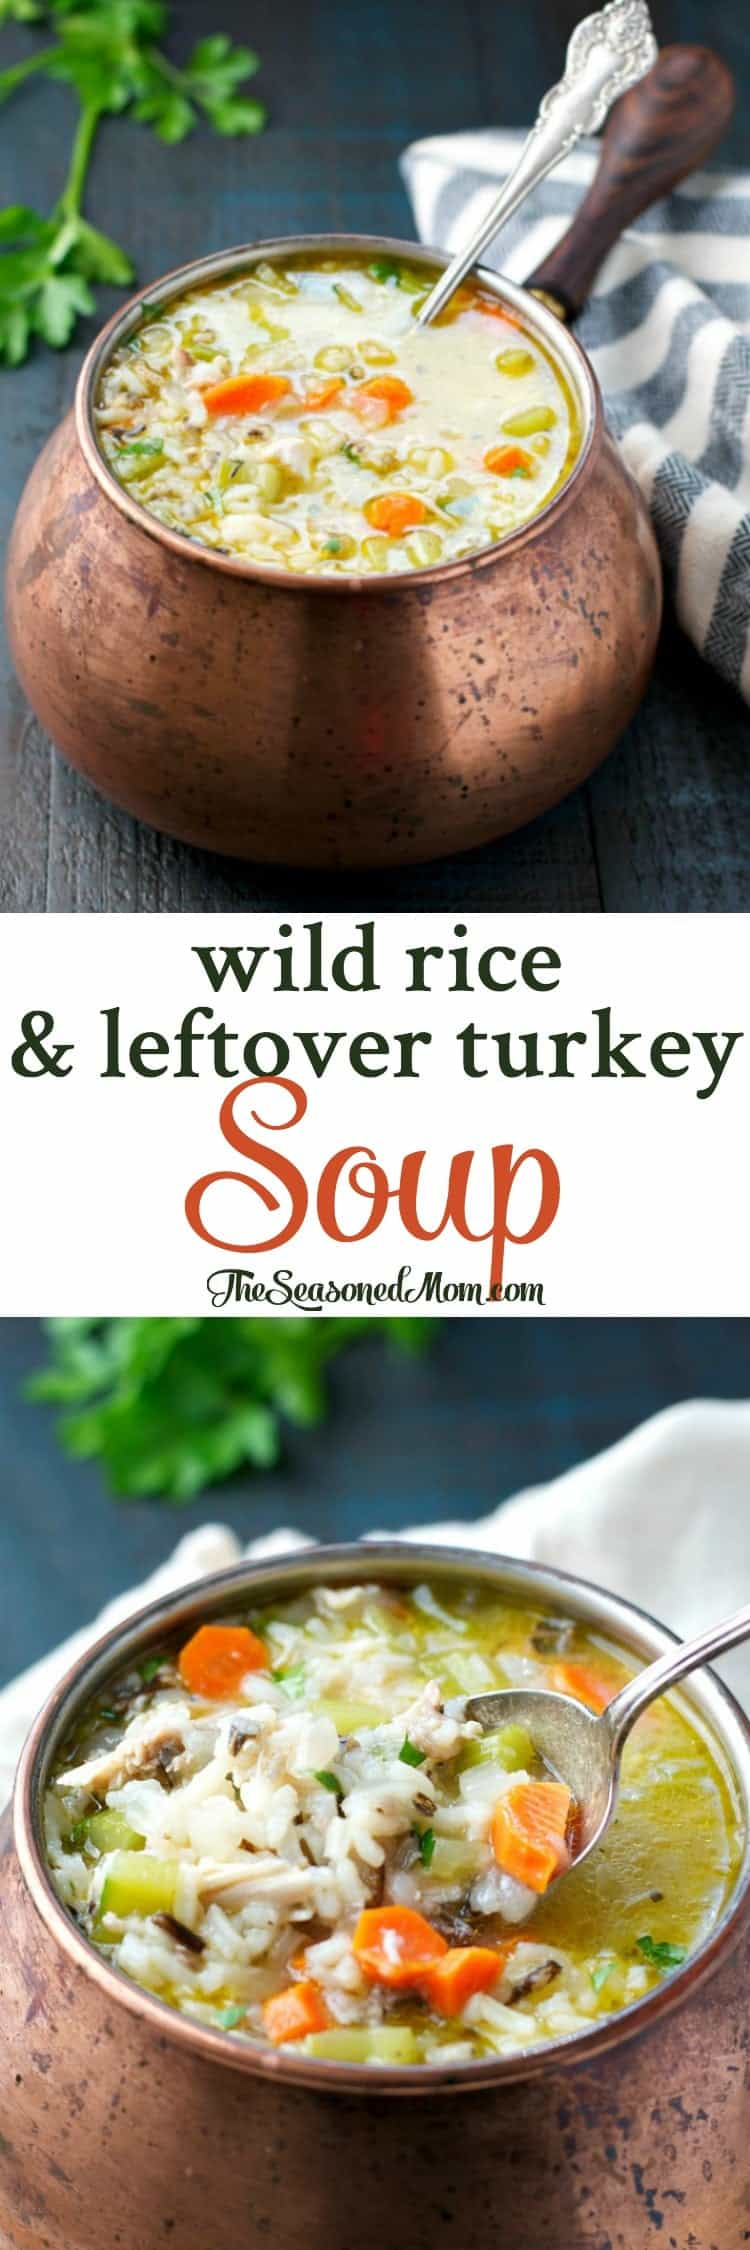 This Wild Rice and Leftover Turkey Soup is a healthy and easy dinner that's ready with only 15 minutes of prep. Simple comfort food at its best!